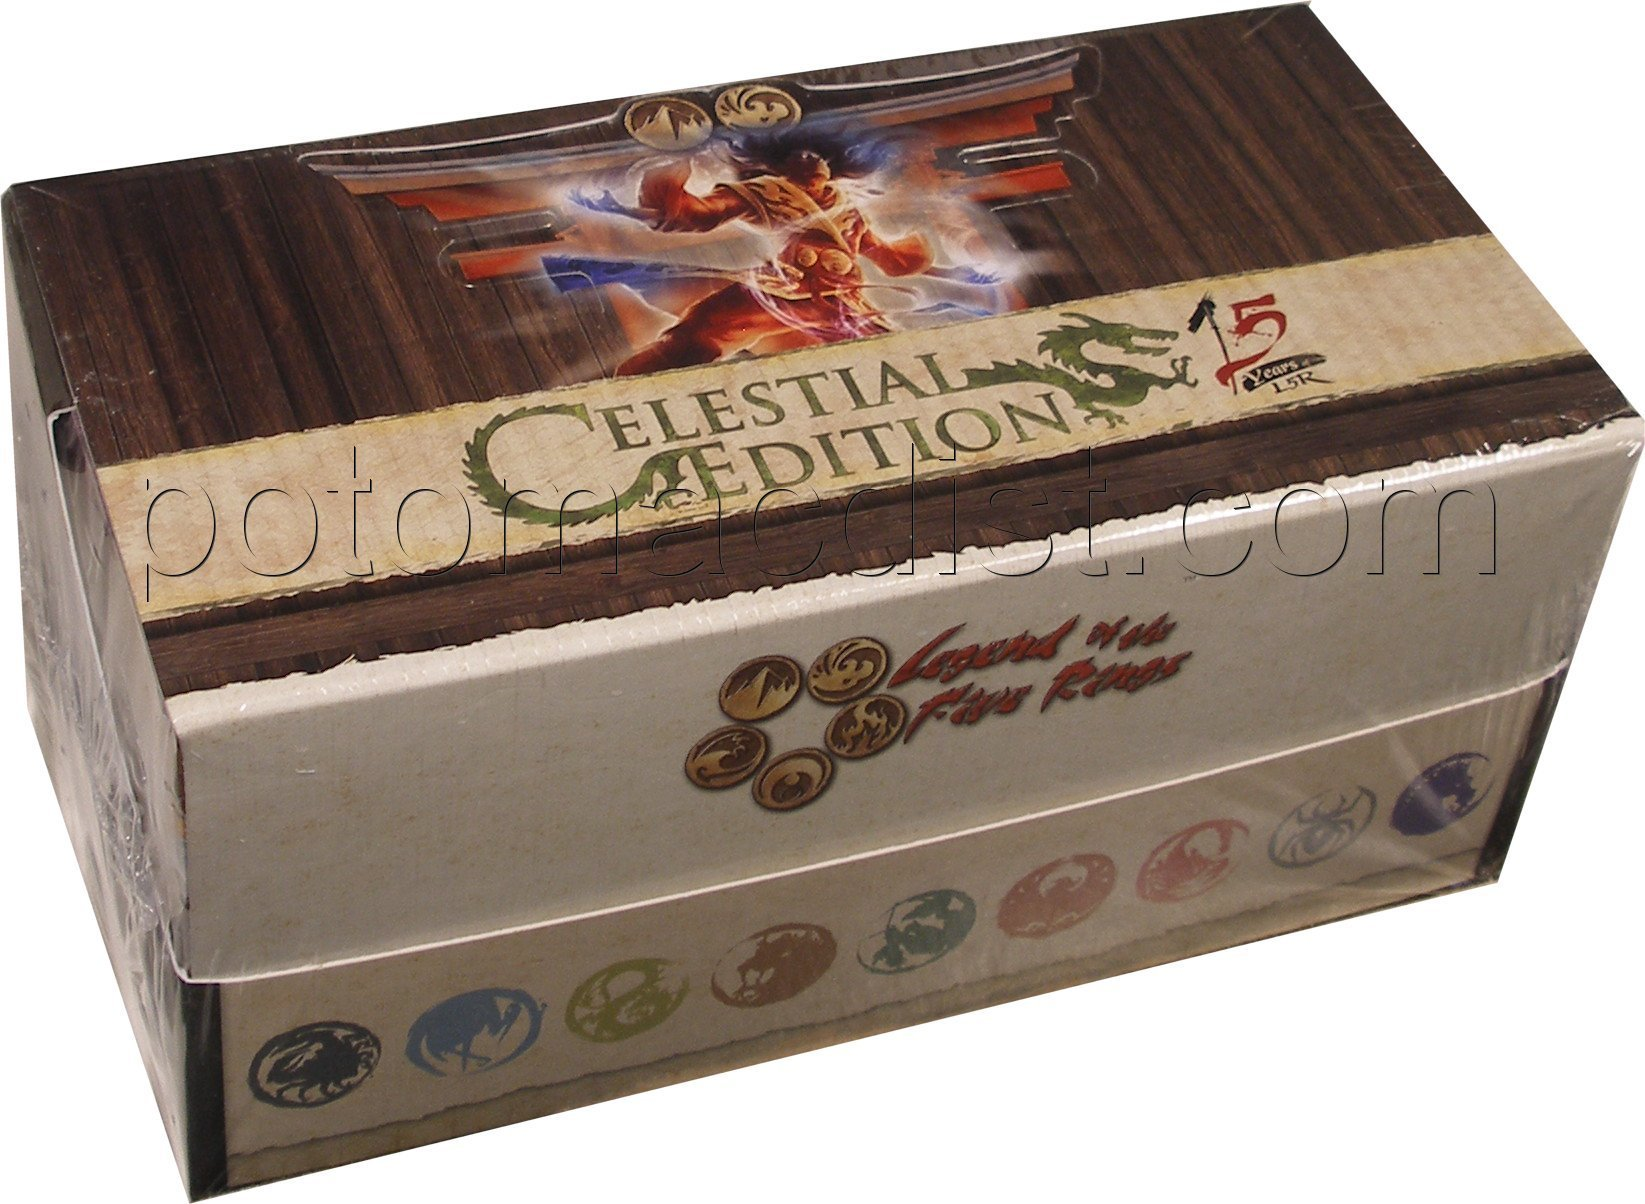 Legend Of The 5 Rings Card Game - Celestial Edition 15th Anniv Starter Box